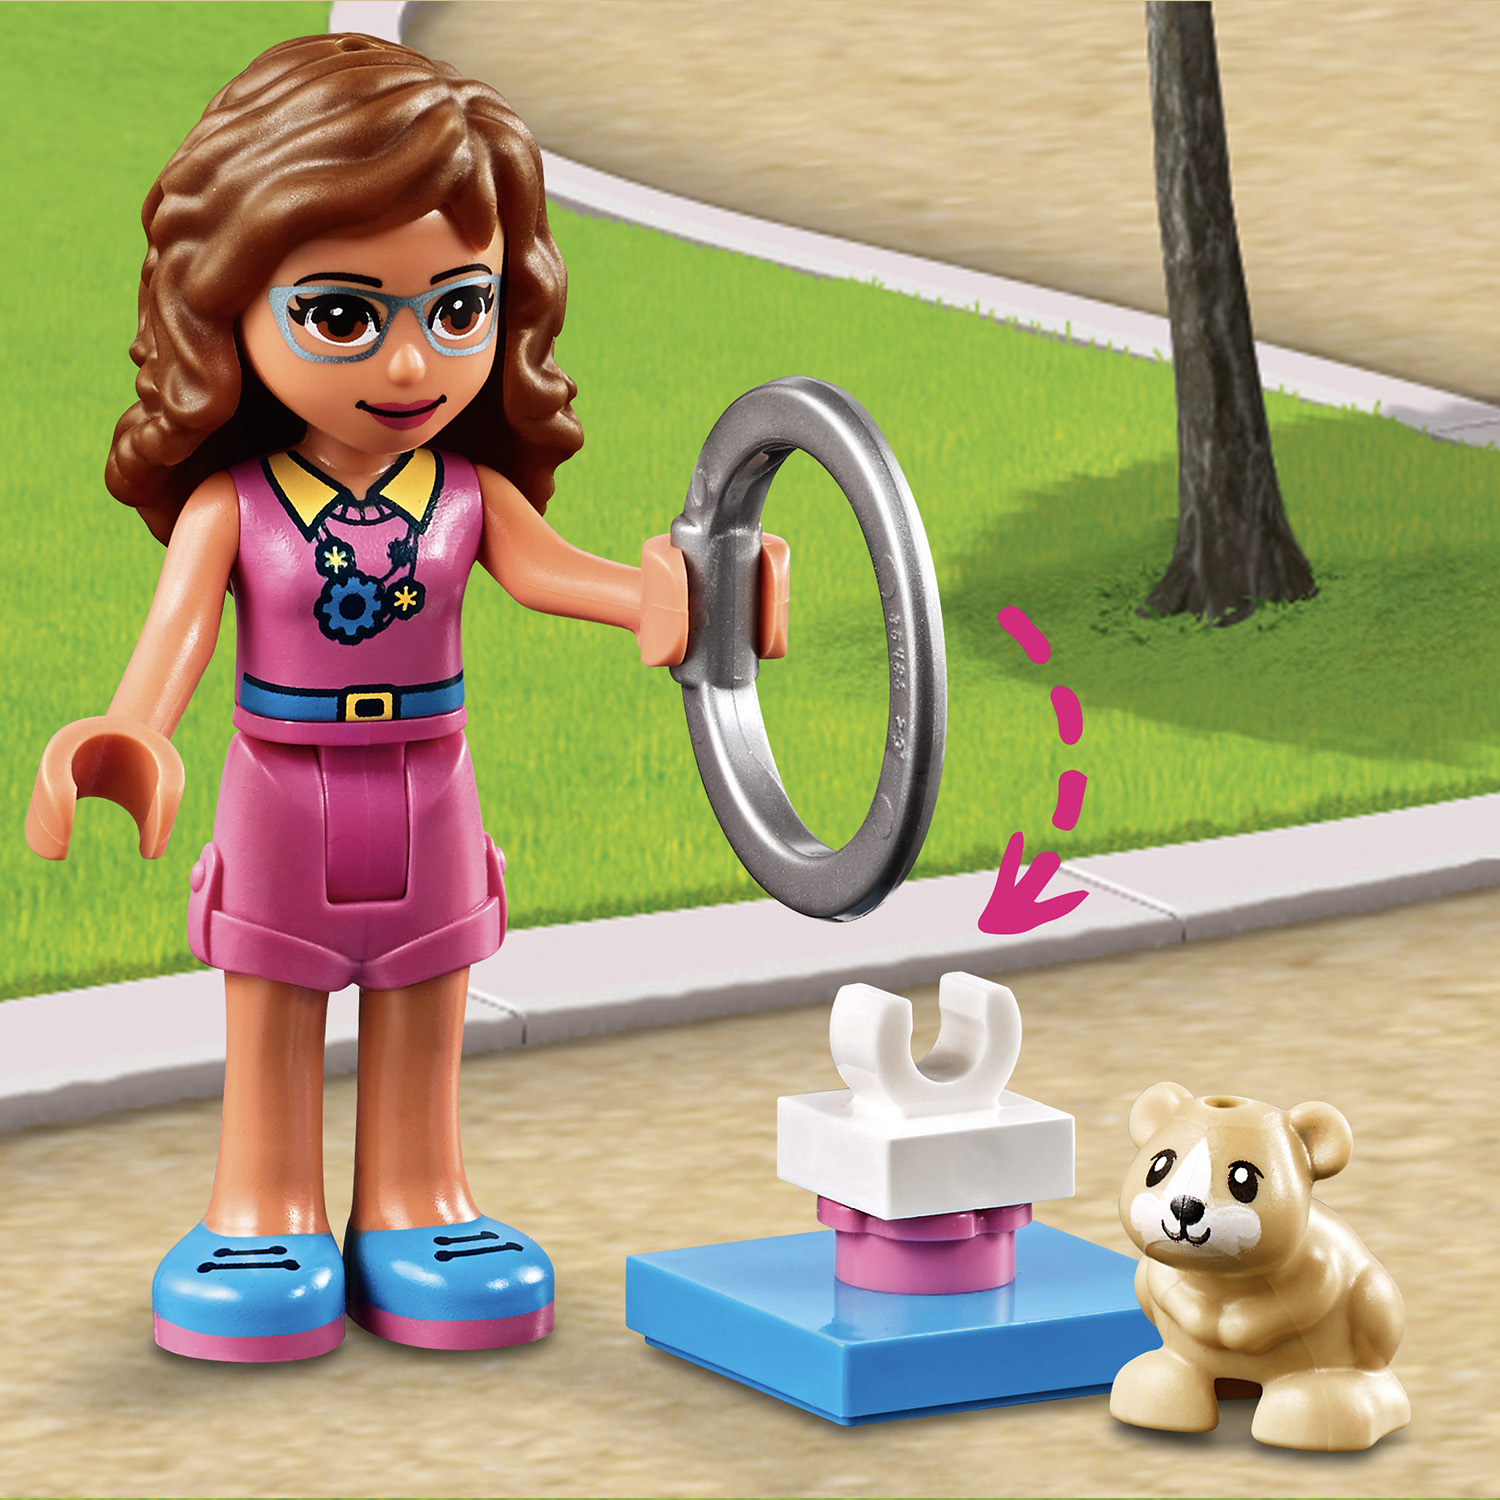 41383 LEGO Friends Olivia's Hamster Playground 81 Pieces ...